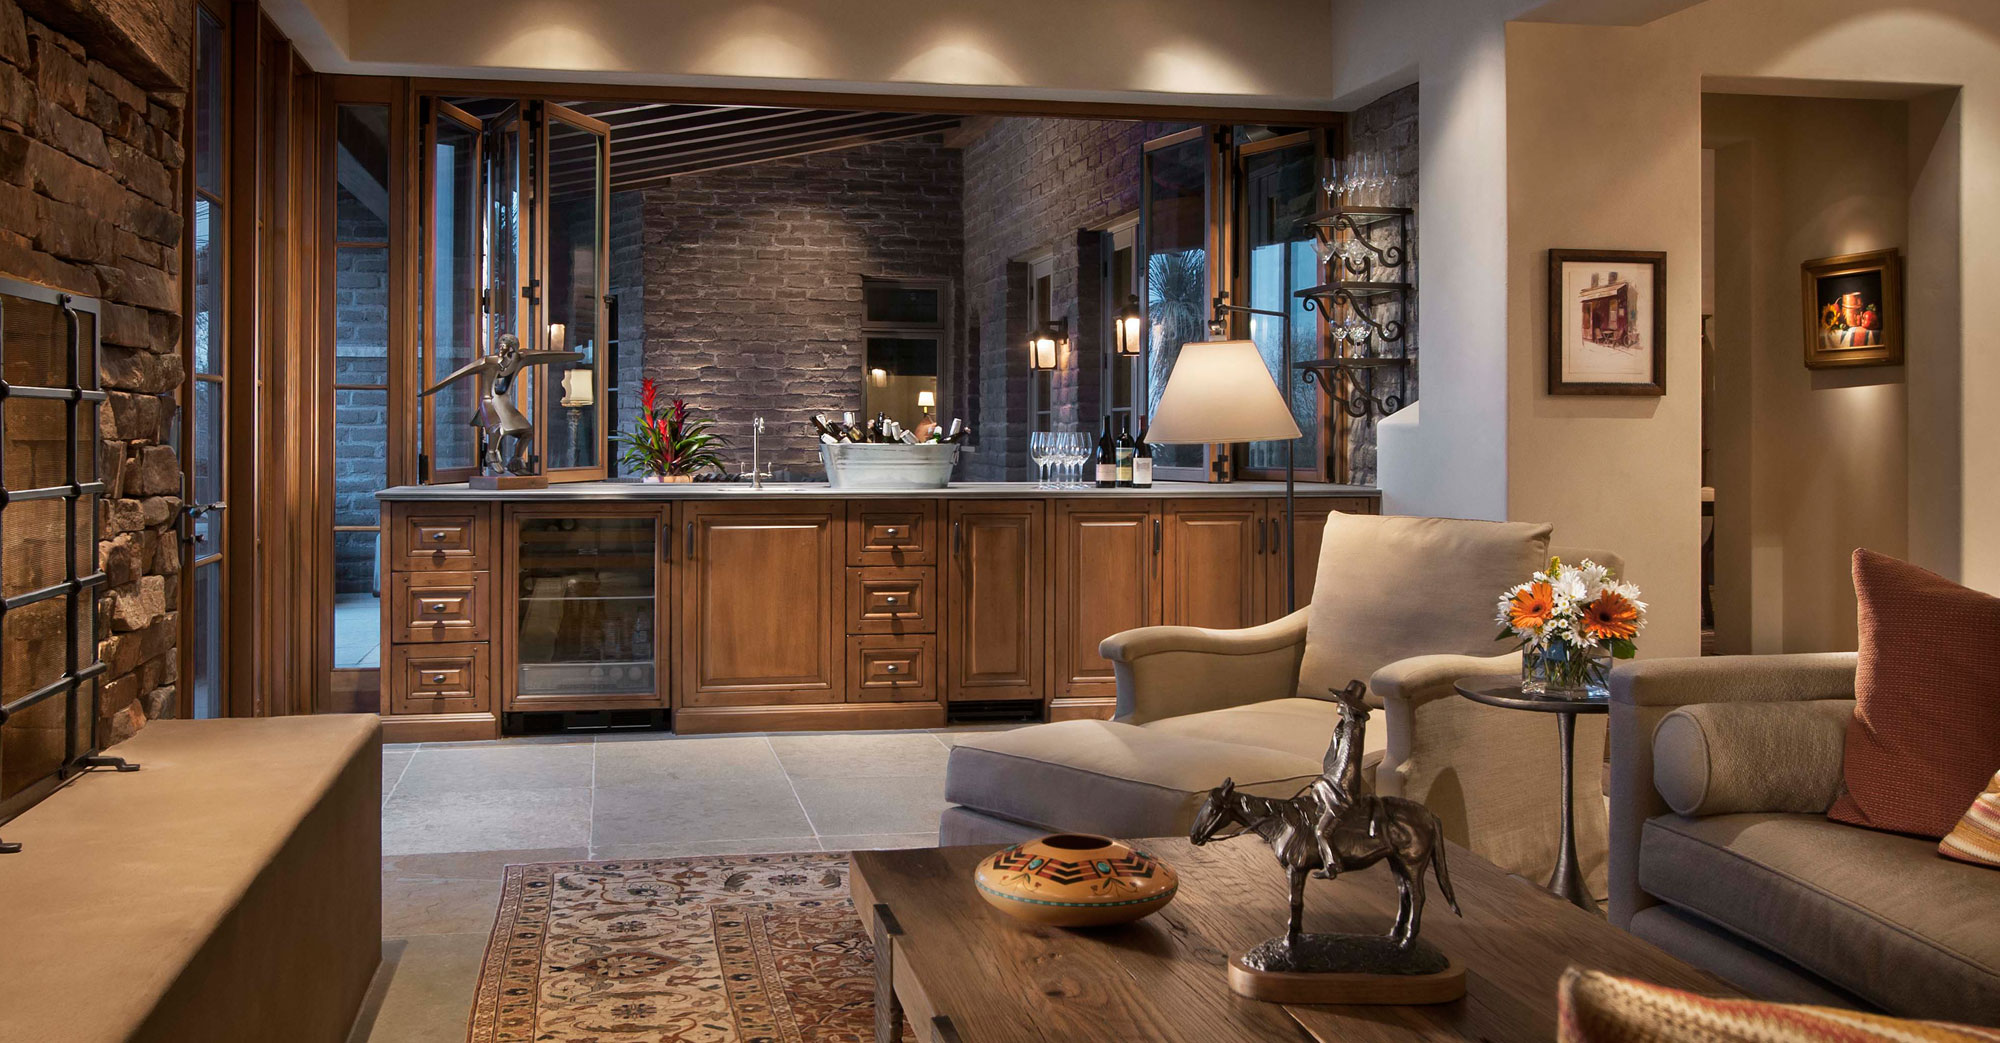 How to Keep your Home Looking Timeless With Design